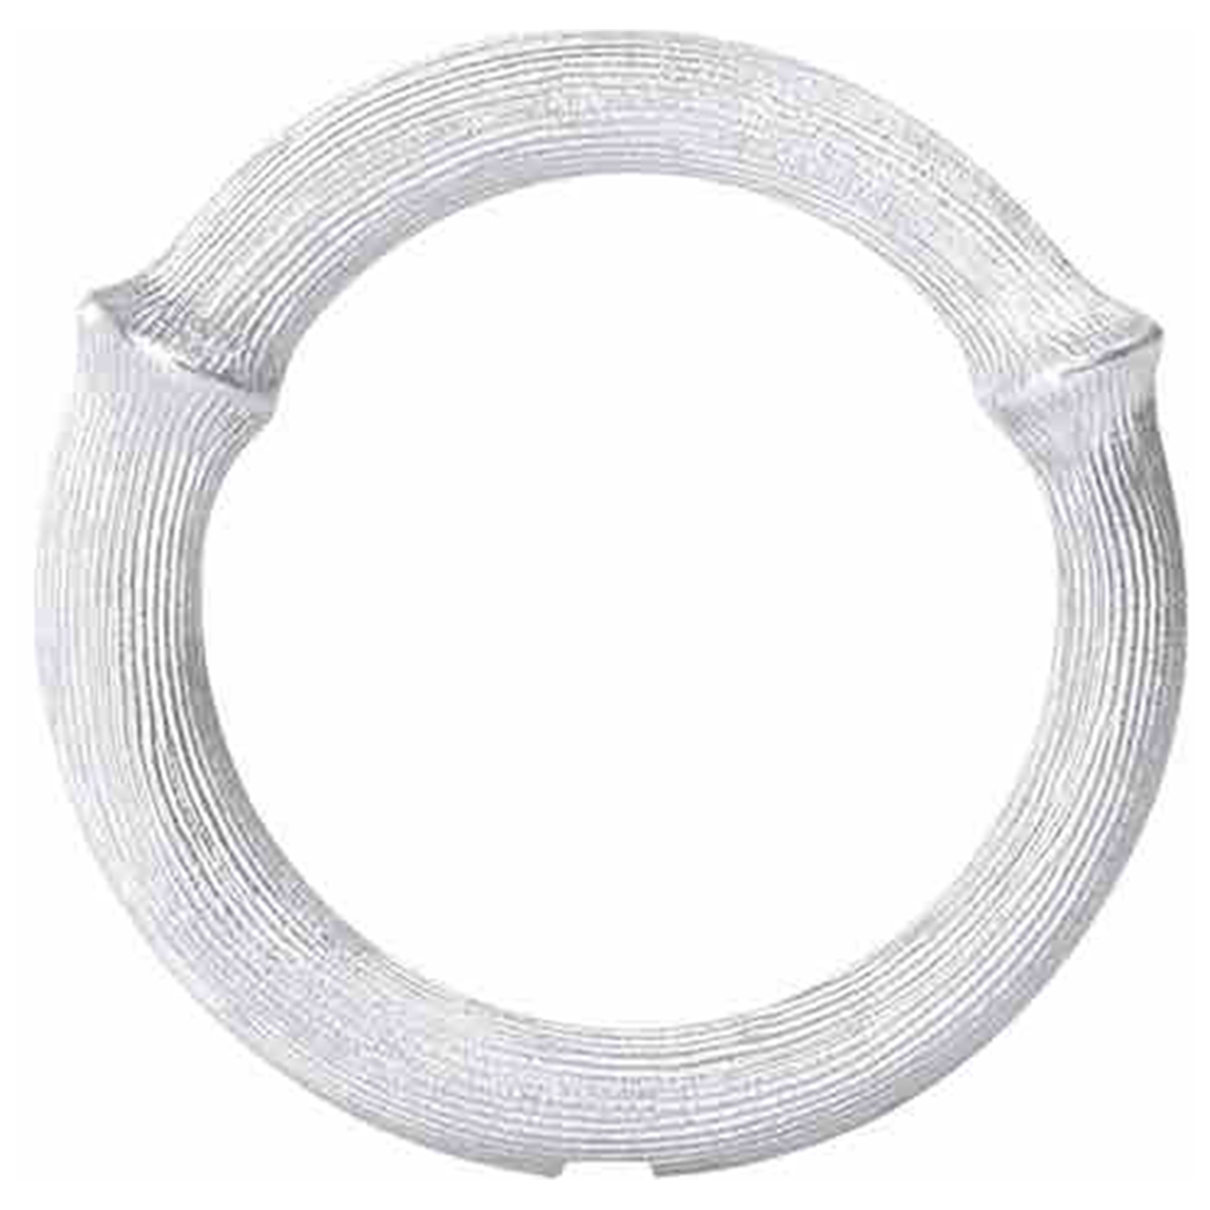 Ole Lynggaard N Silver White gold ring for Women 52 MM